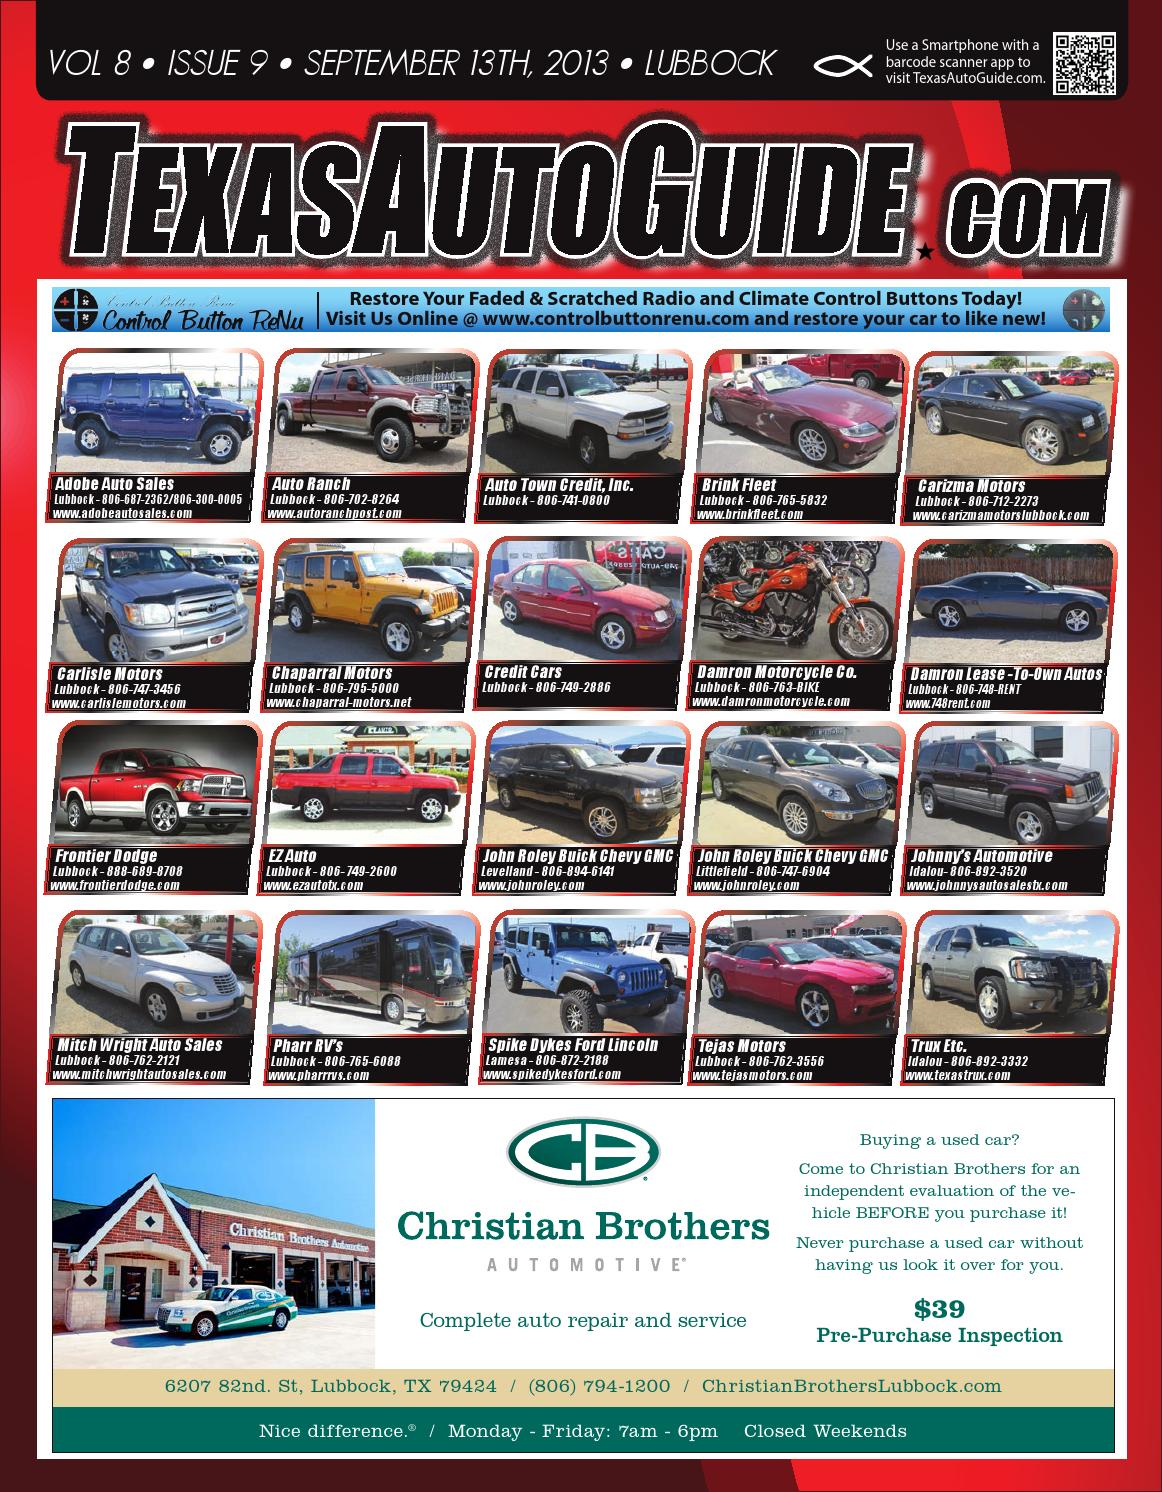 Car Dealerships In Lubbock Tx >> Texas Auto Guide Lubbock September 13th By Texas Auto